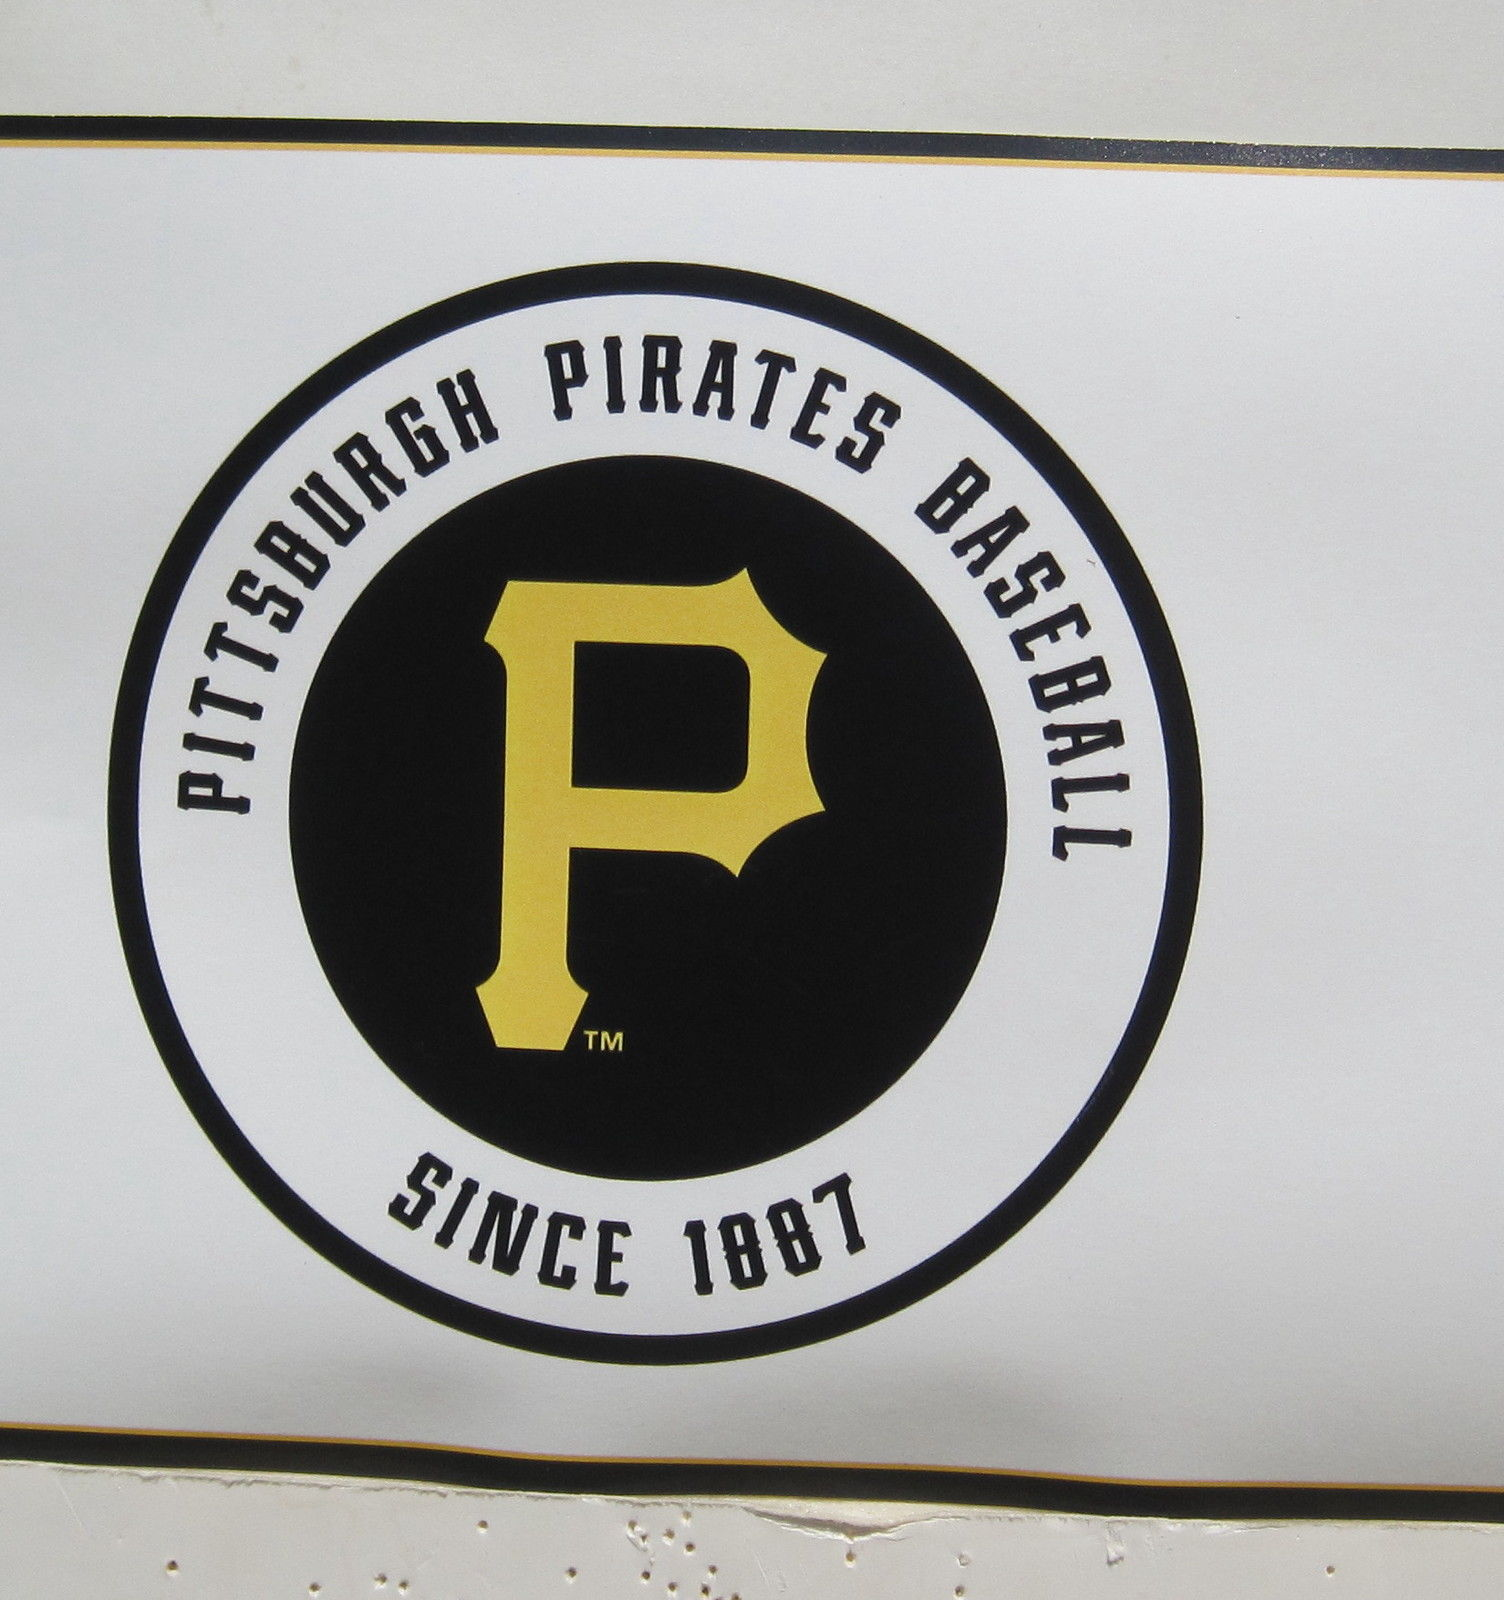 border 6 pittsburgh pirates logo border first quality wallpaper border 1504x1600